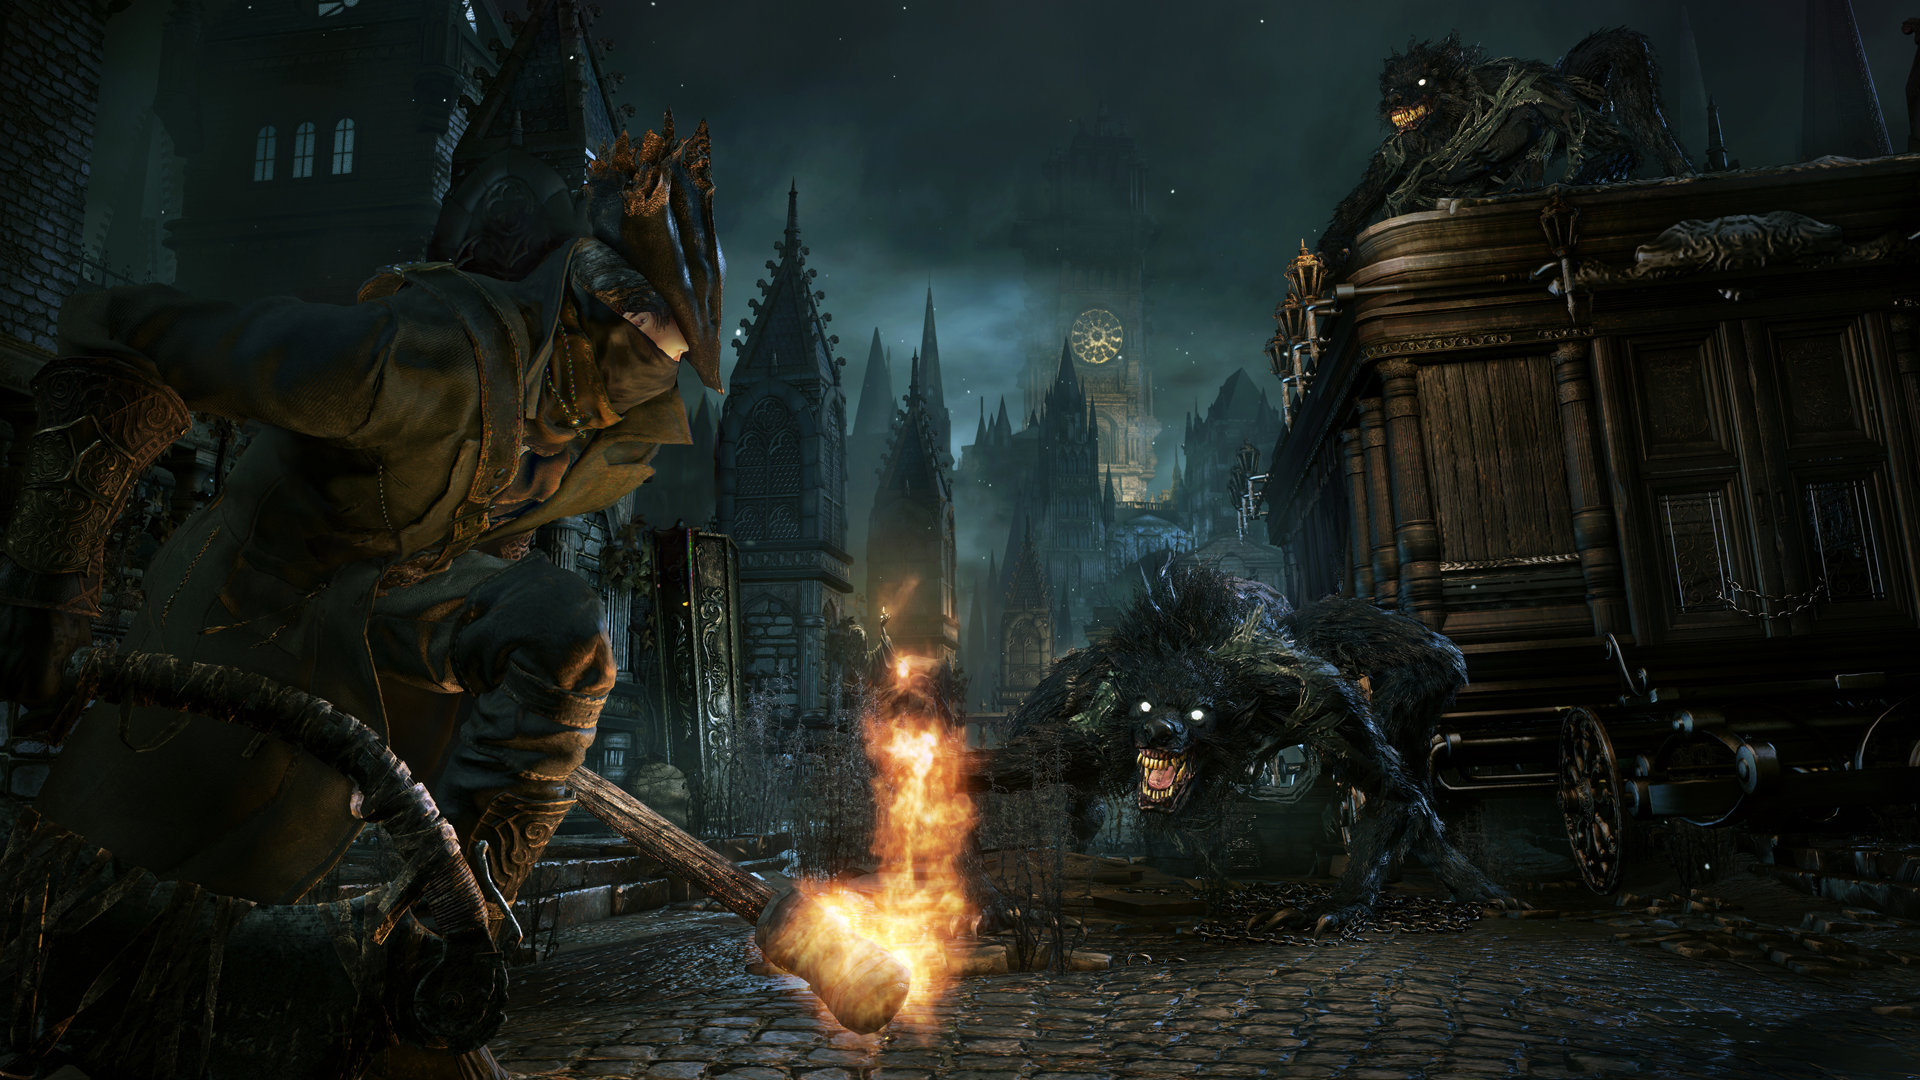 RPG Video Game Review: Bloodborne